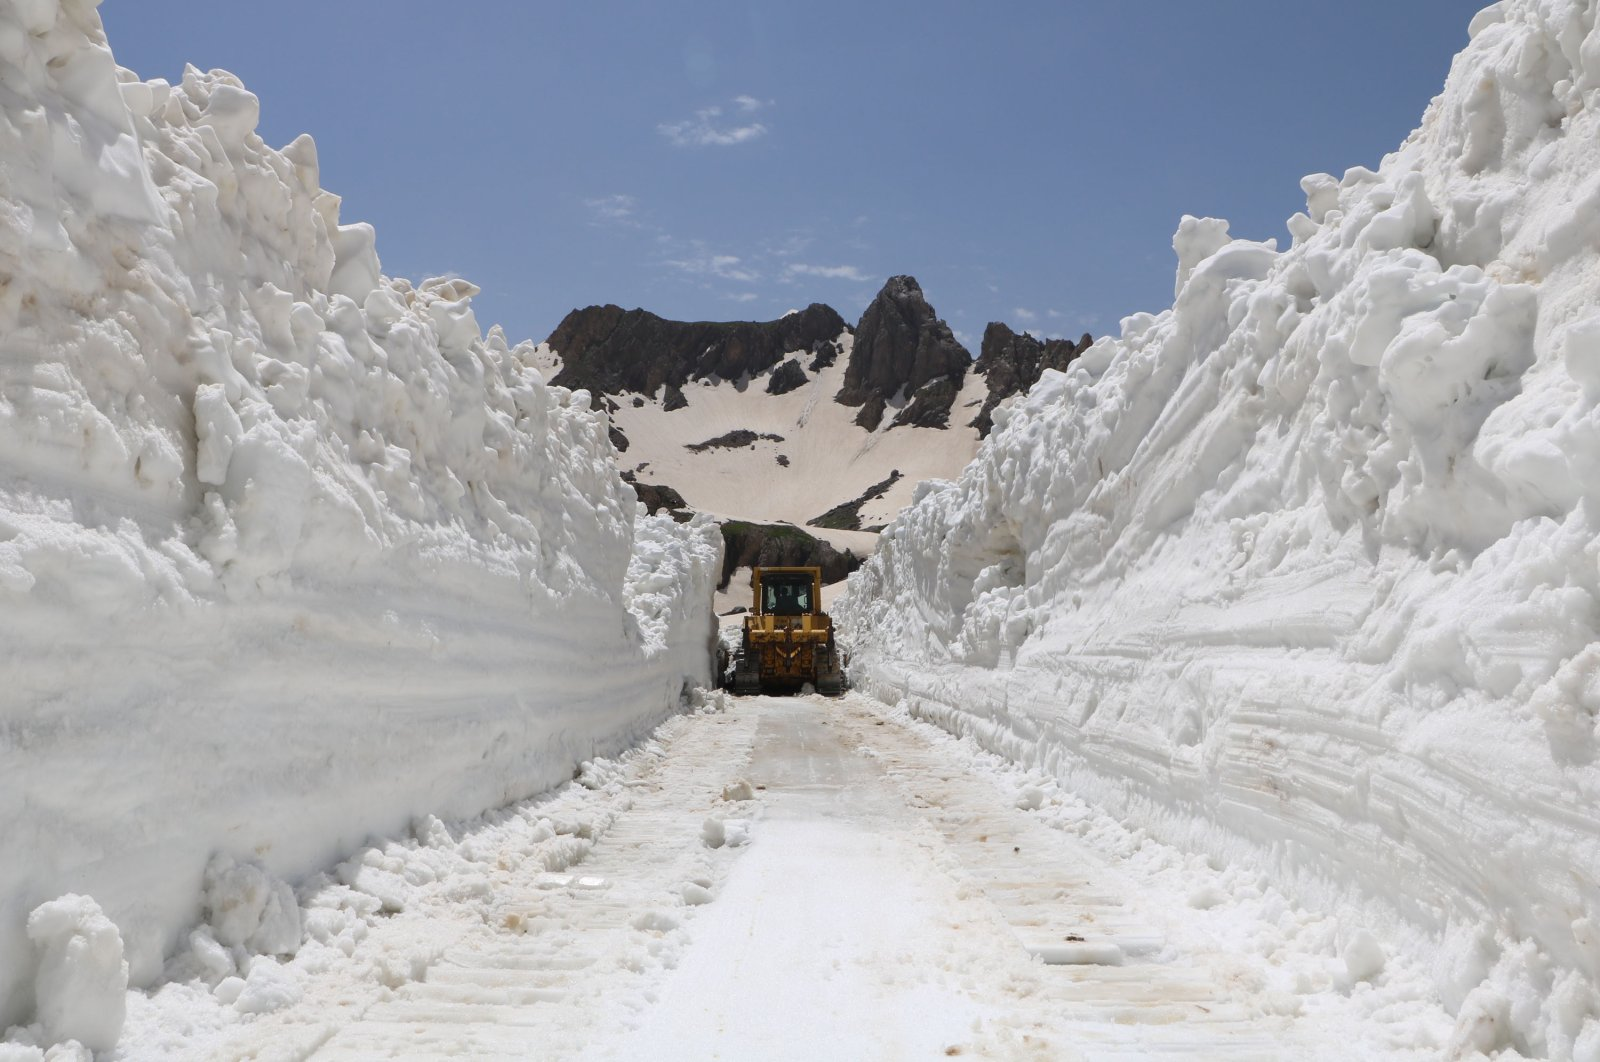 A snowplow rolls through columns of snow in Yüksekova district, in Hakkari, Turkey, June 18, 2020. (DHA Photo)